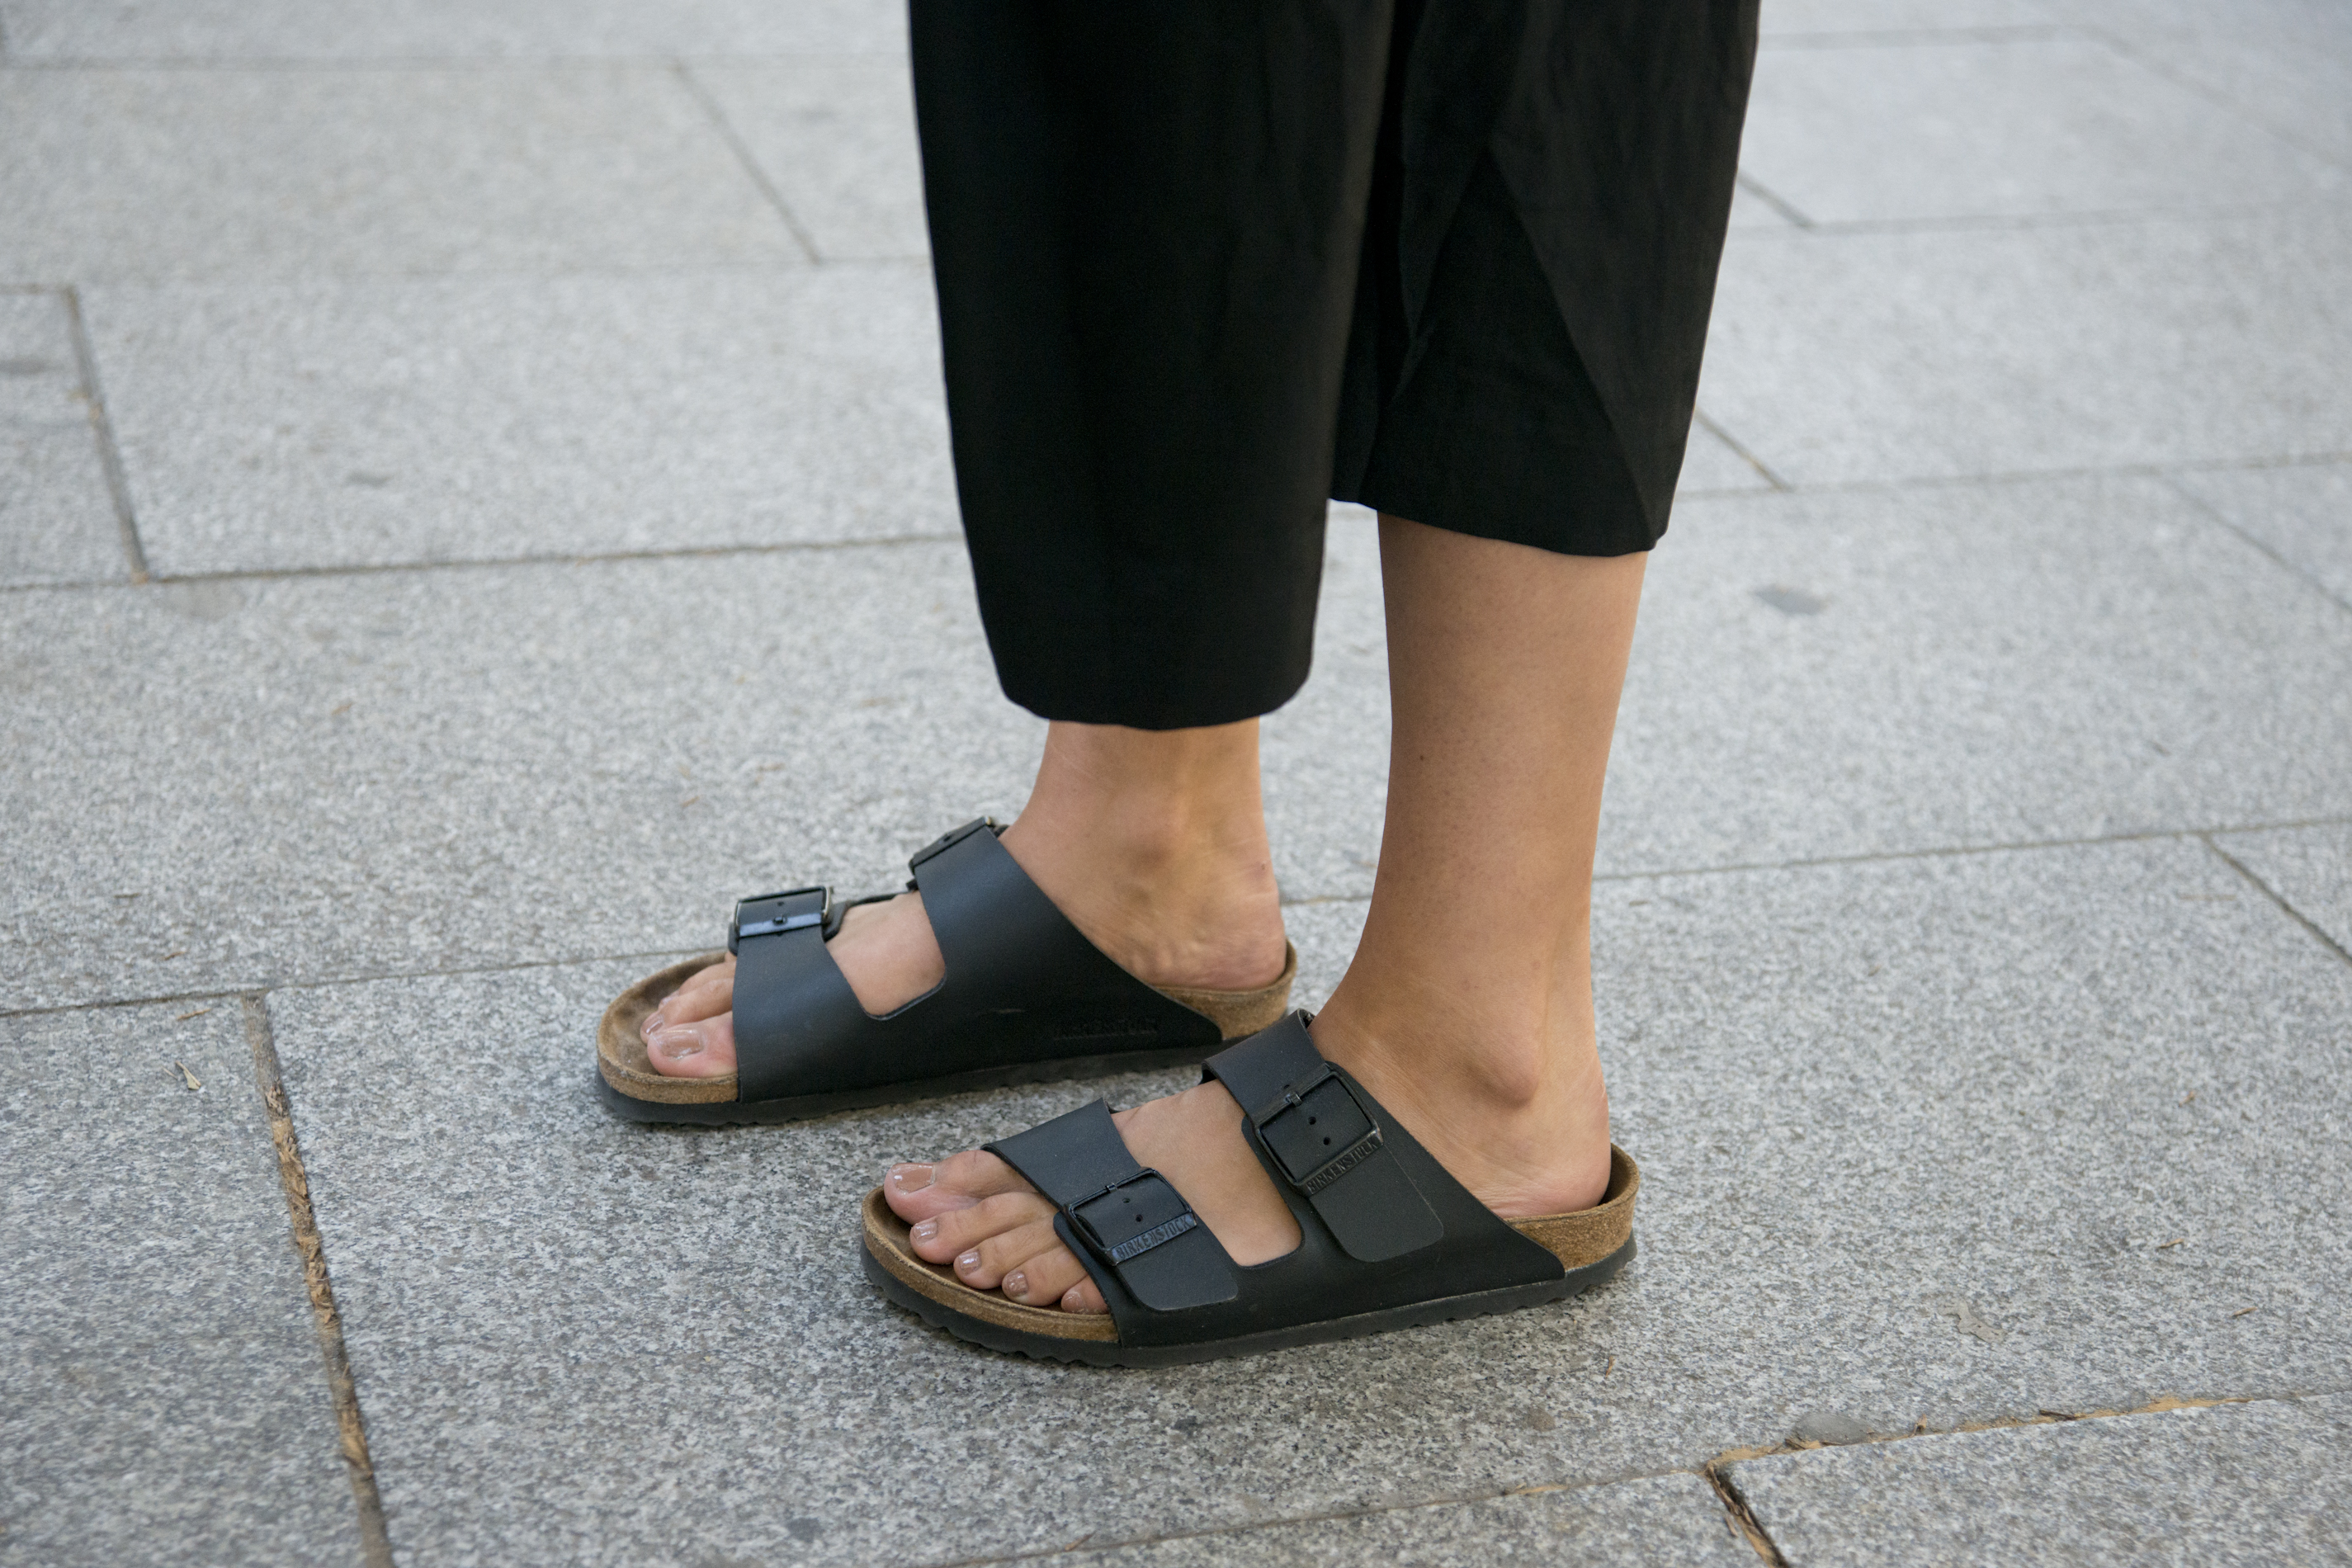 How Did Birkenstocks Convince Us the Pain of Breaking Them in Was Worth It?